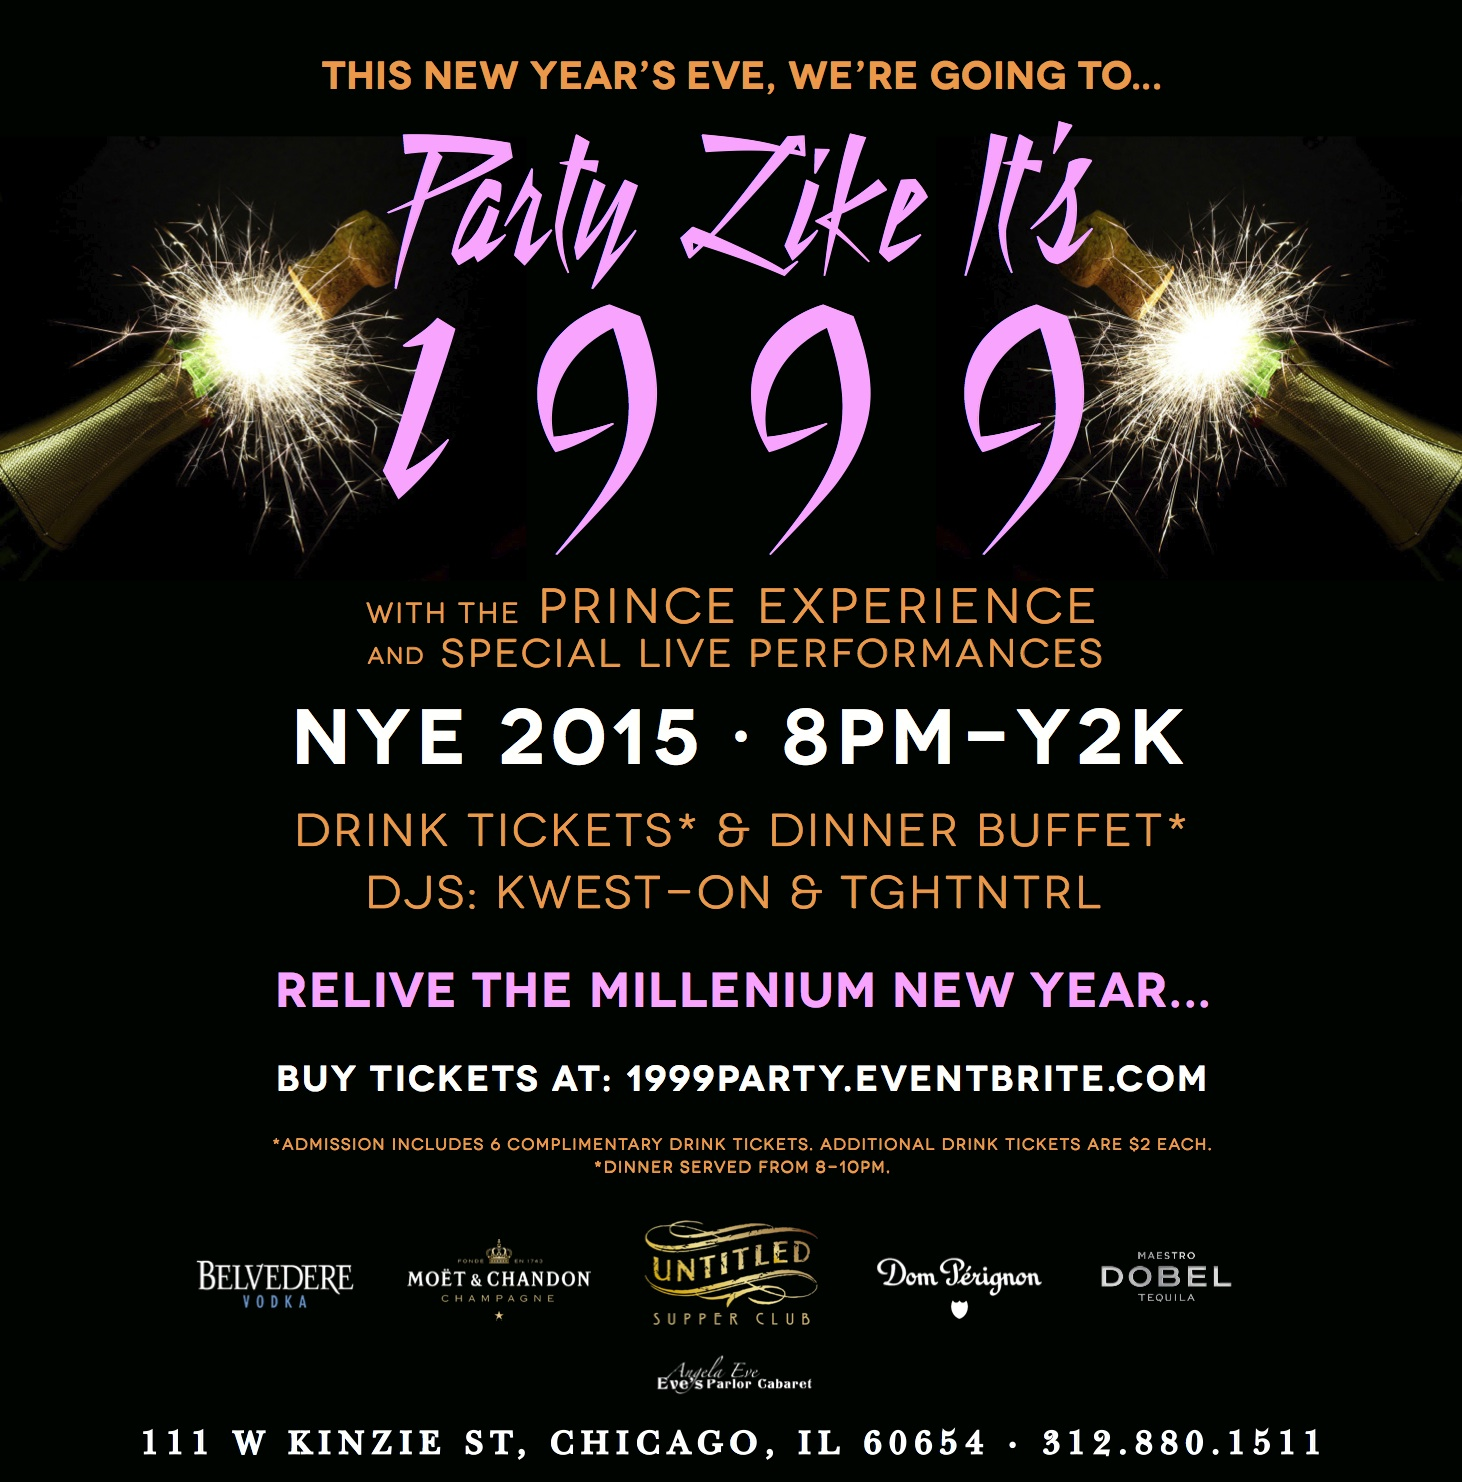 1999 Party NYE 2015 at Untitled